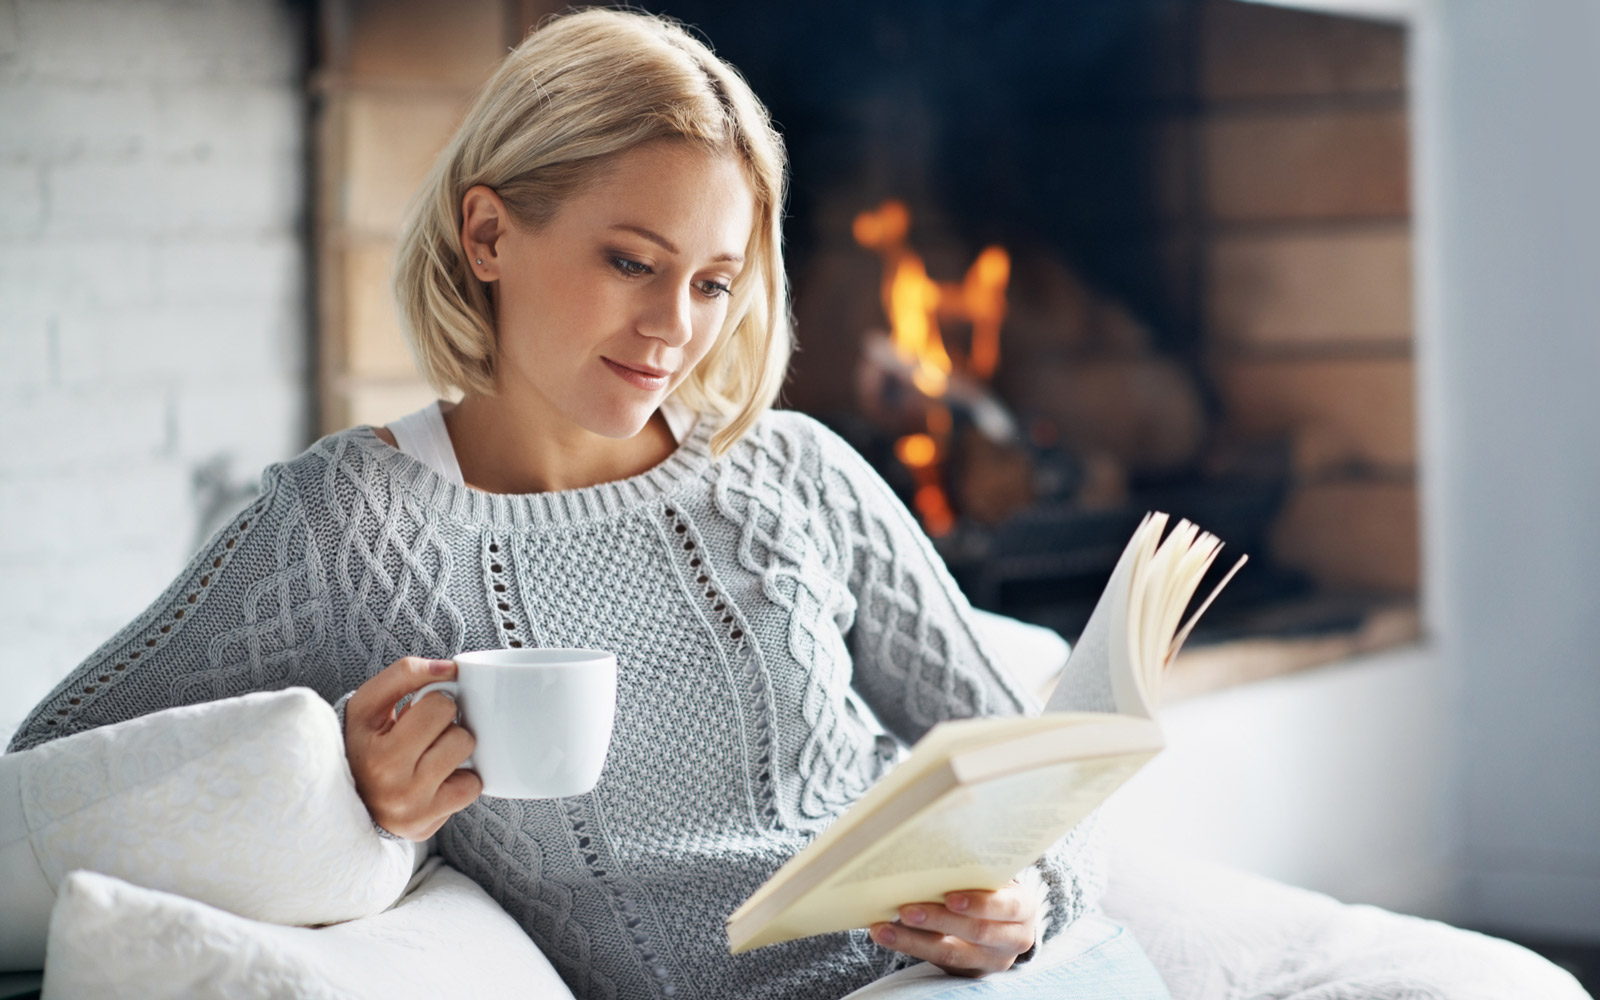 A beautiful young woman reading a book and enjoying a warm beverage near a fireplace